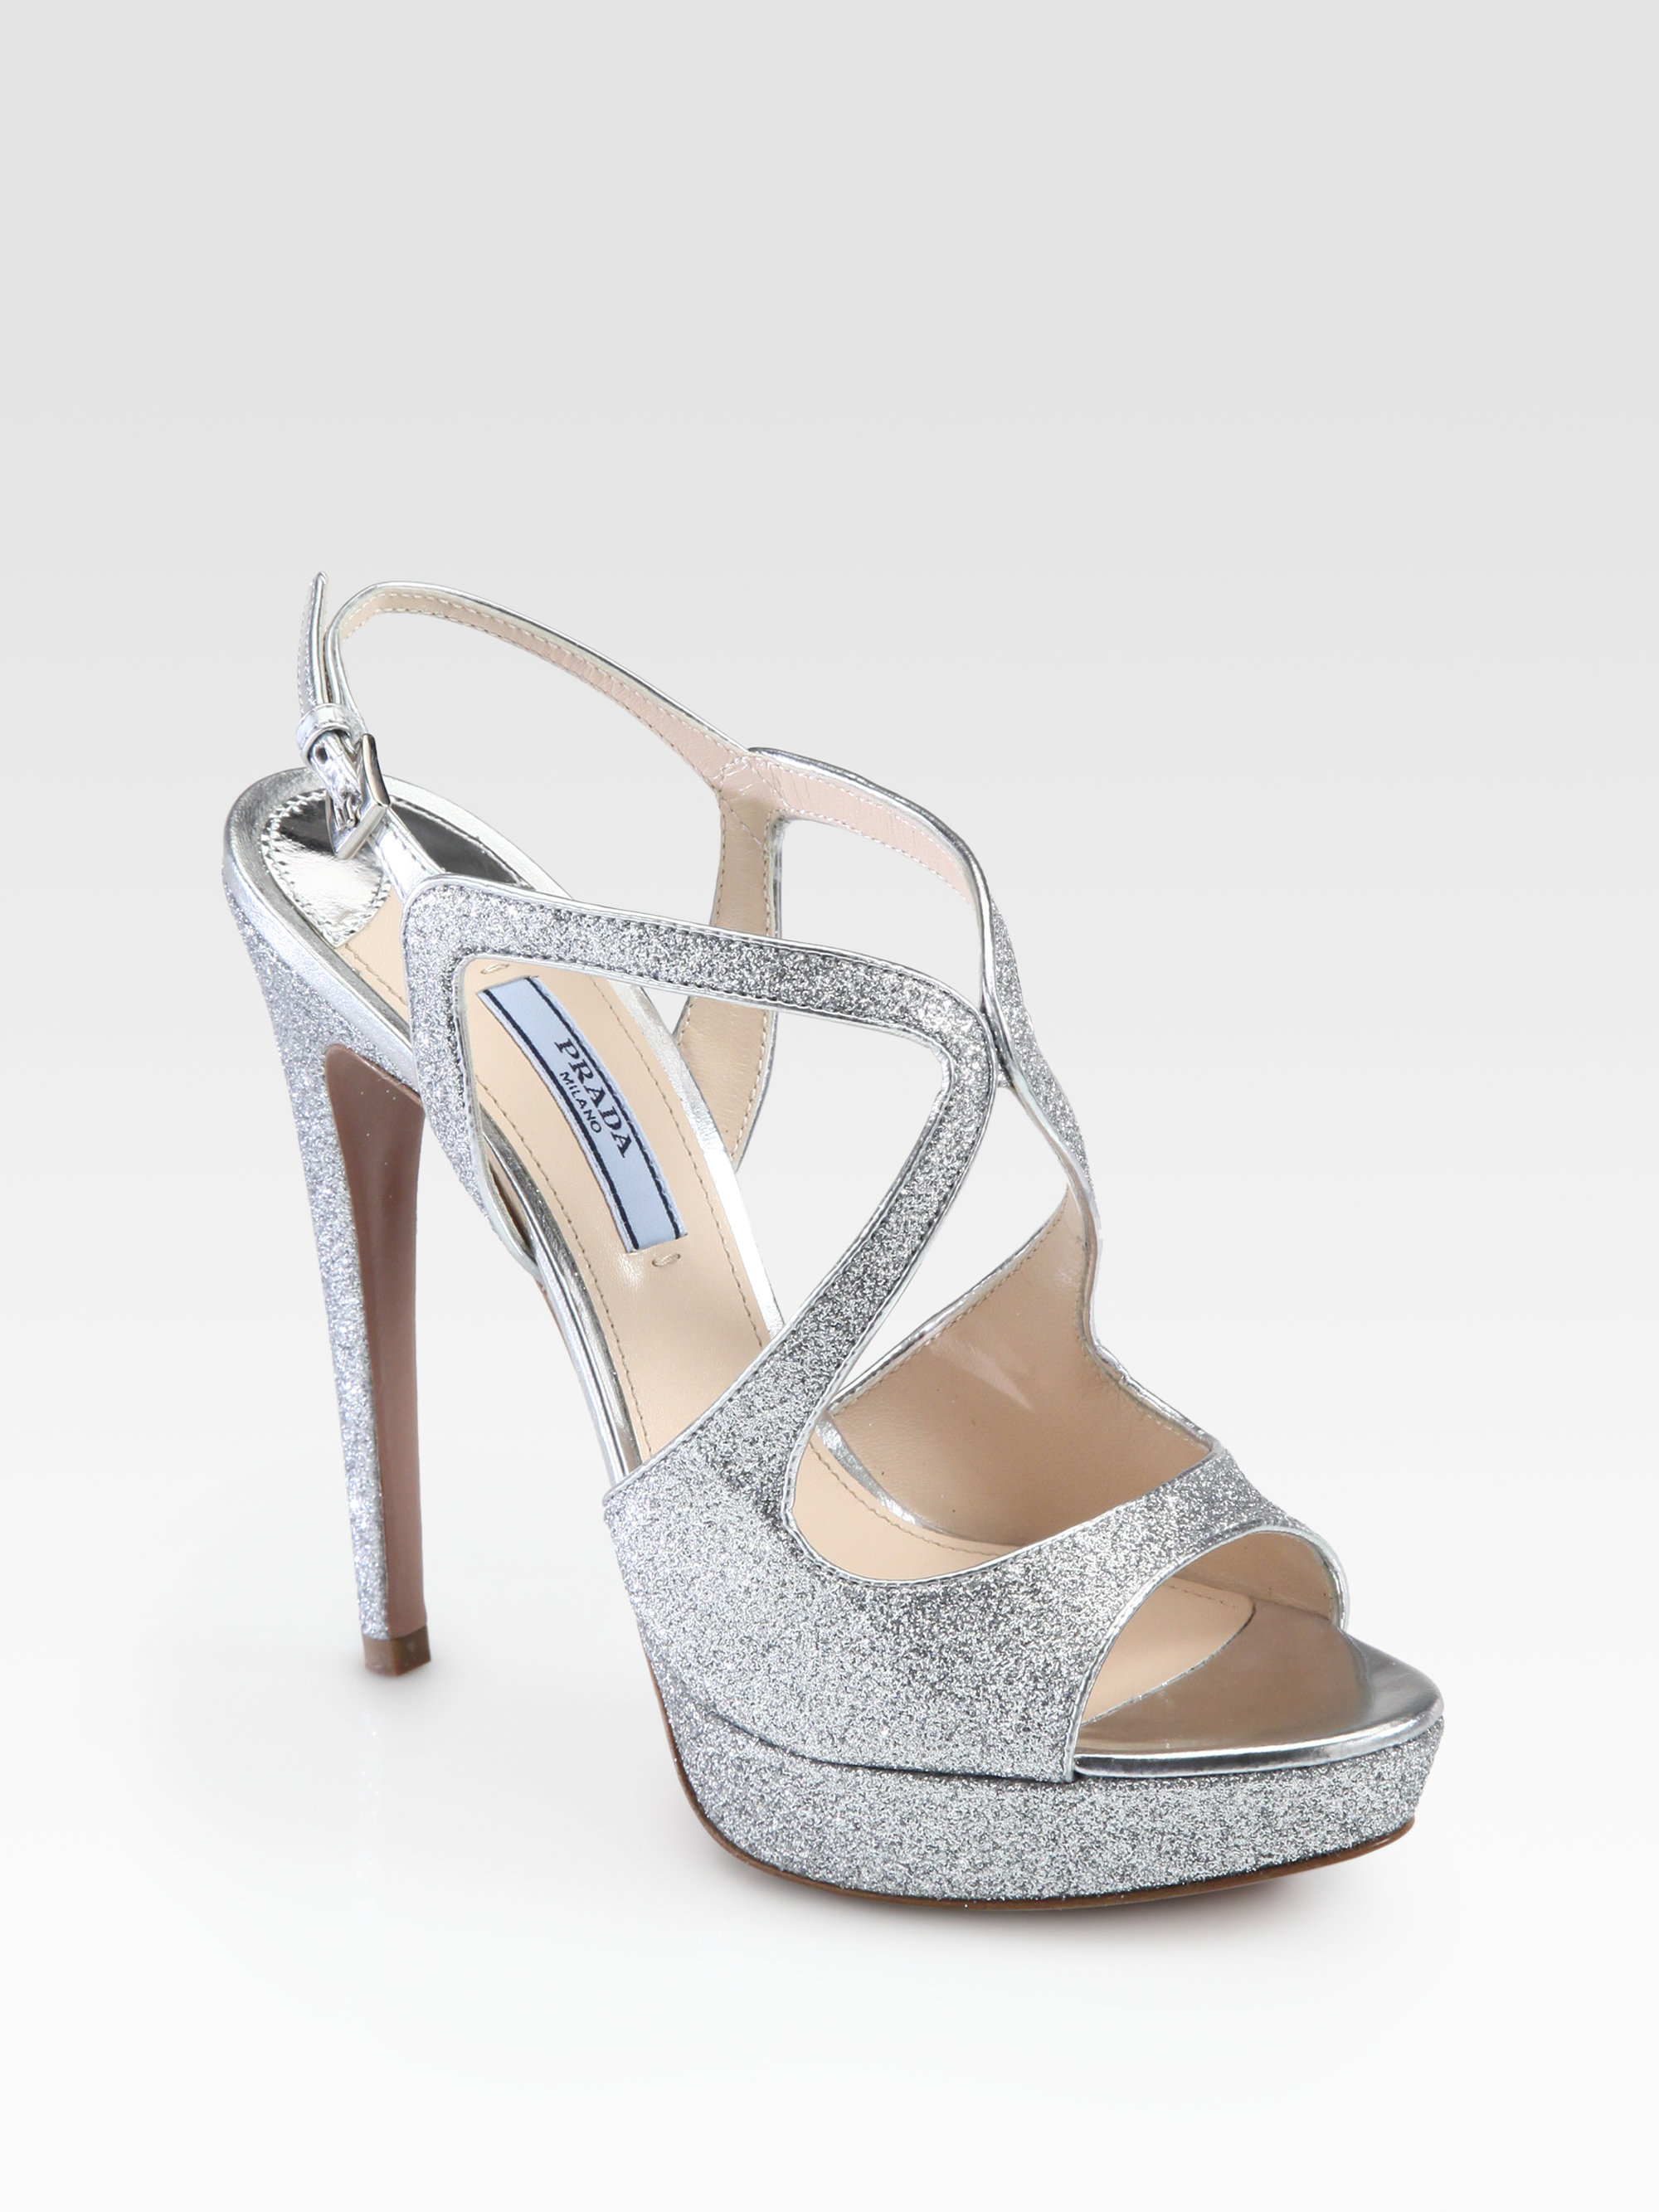 75f491ad997 Lyst - Prada Glitter Strappy Platform Sandals in Metallic